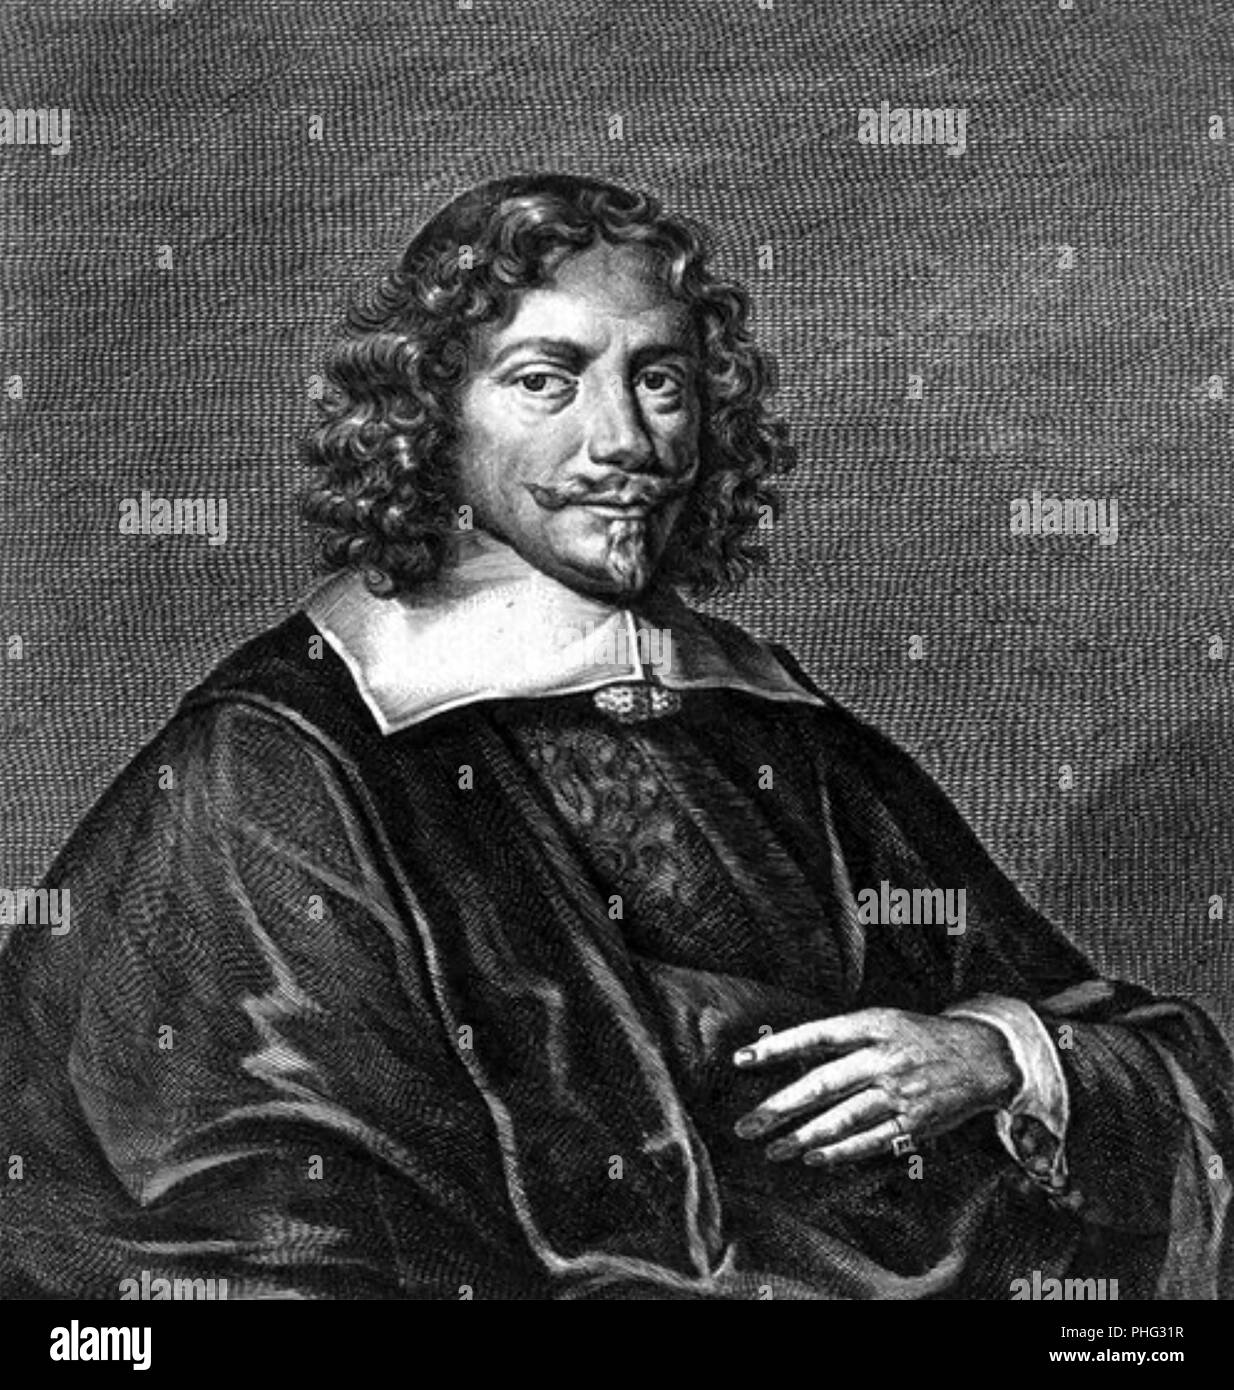 VINCENT FABRICIUS (1642-1699) German jurist and 'Professor of Morals and Eloquence' in Hamburg - Stock Image